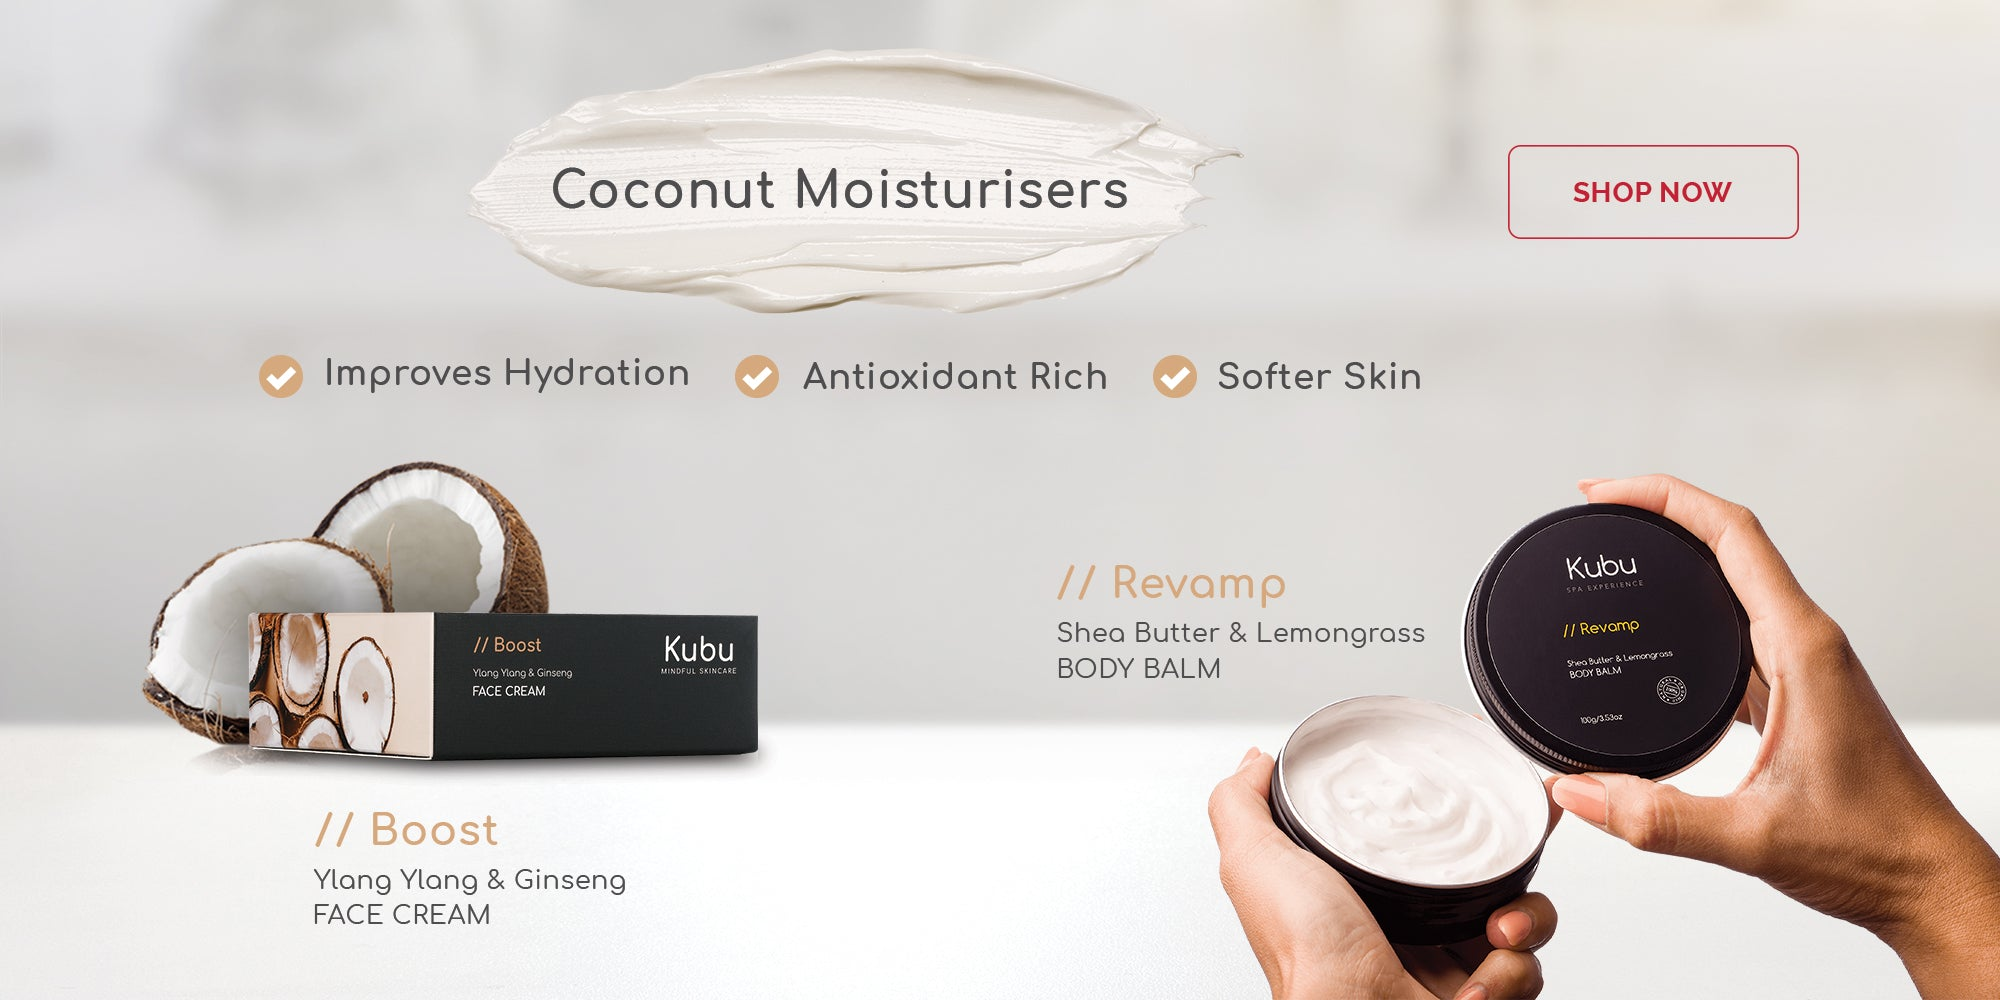 Kubu Boost Face Cream and Revamp Body Balm with Coconuts